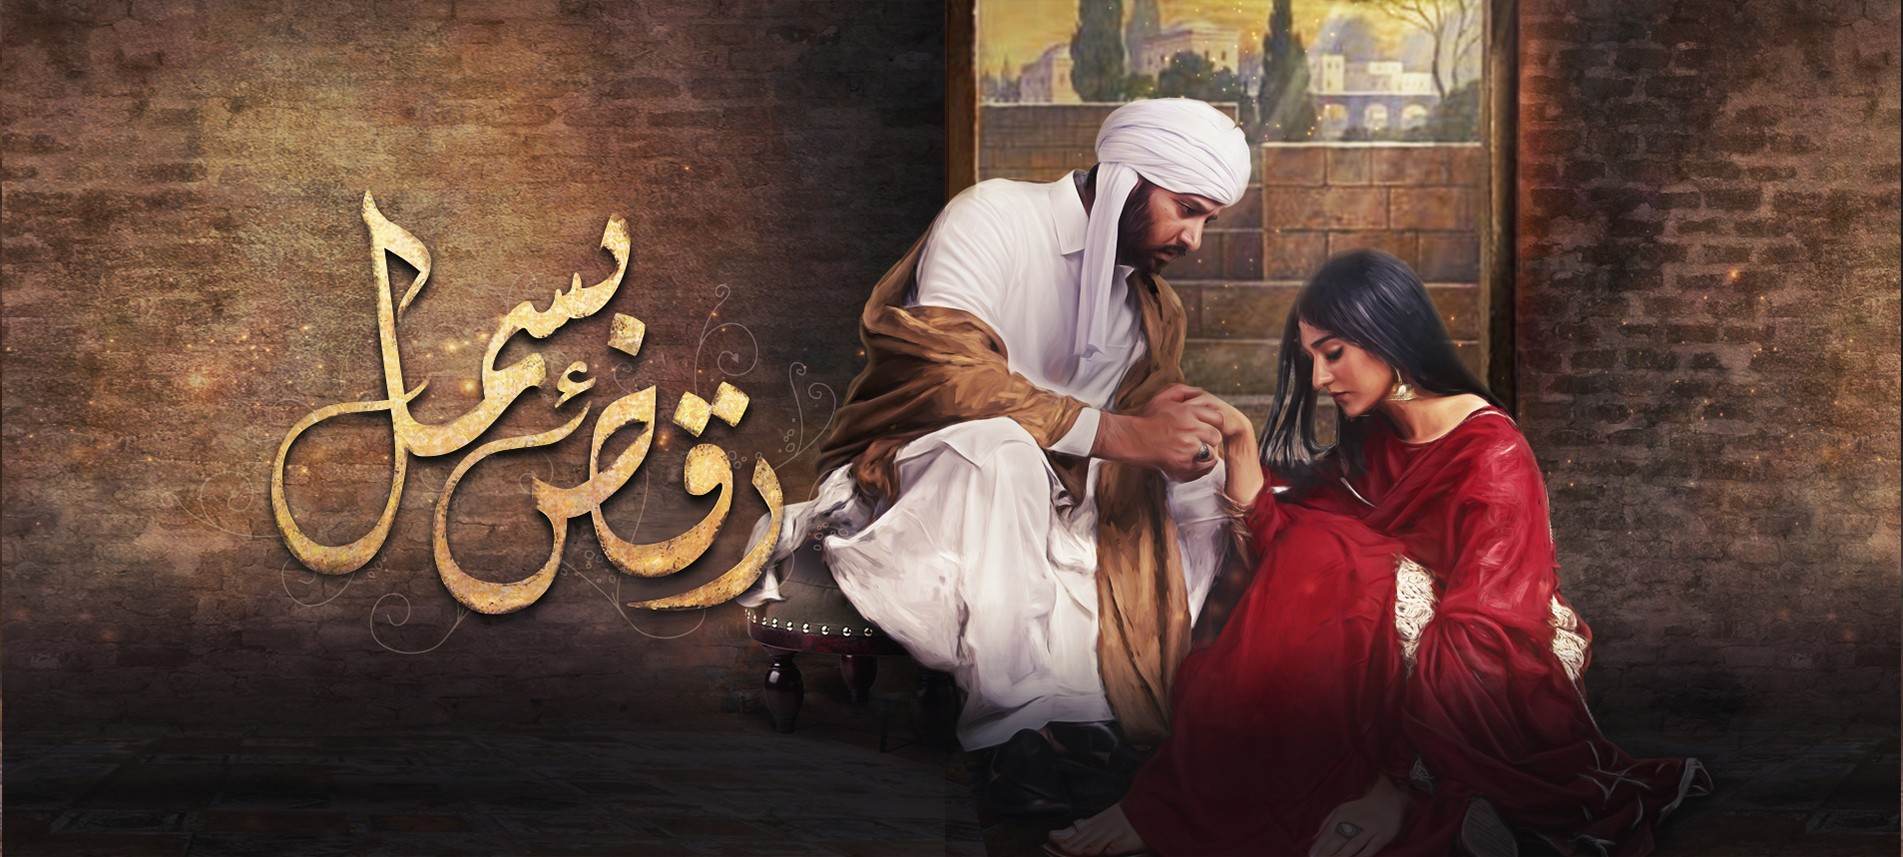 We have watched a number of amazing drama serials this year and we are still waiting for the new ones for best entertainment. We have been observing that a series of new and top most promising dramas is on the way to the television screens. Well... that's something turning on excitement for us. After watching Mushk and Prem Gali, the viewers are expecting something of the same fantastic level to make way to screen. However, the cast of the new dramas is enough to say that we are going to have something exceptional. Here we have got the list of top most promising dramas that you must include in your watch list! Top Most Promising Dramas - Coming Soon! Check out this list of the new dramas that seem to be the top most promising dramas that are ready to hit the screens. 1. Raqs-e-Bismil The teaser of drama serial Raqs-e-Bismal is already creating hype on social media. Imran Ashraf is once again all set to show is exceptional acting talent along with Sarah Khan. The interesting thing is that Lollywood actress Zara Sheikh is also making a comeback in Raqs-e-Bismil. As we know that the promo is going viral so we are considering it one of the most promising new serials. This drama serial will be going on air at HUM TV. Watch this video! 2. Dunk Dunk is another upcoming drama serial having the finest cast i.e. Sana Javed, Bilal Abbas, and Naumaan Ejaz. The teaser of this drama depicts that it is a story revolving around #MeToo movement. Sana has already played a significant role in drama serial Ruswai that was also based on such a subject. Now she has joined Bilal Abbas and Naumaan Ejaz that makes us have a hope for something brilliant on the way. This drama will be going on air at ARY Digital. Watch the teaser! 3. Phaans Phaans is based on a different story and its teaser has put us on ignition mode that we are anxiously waiting for it to go on air. The entirely different look of Shahzad Sheikh has changed the overall appeal of this drama serial. Moreover, Zara Noor Abbas 